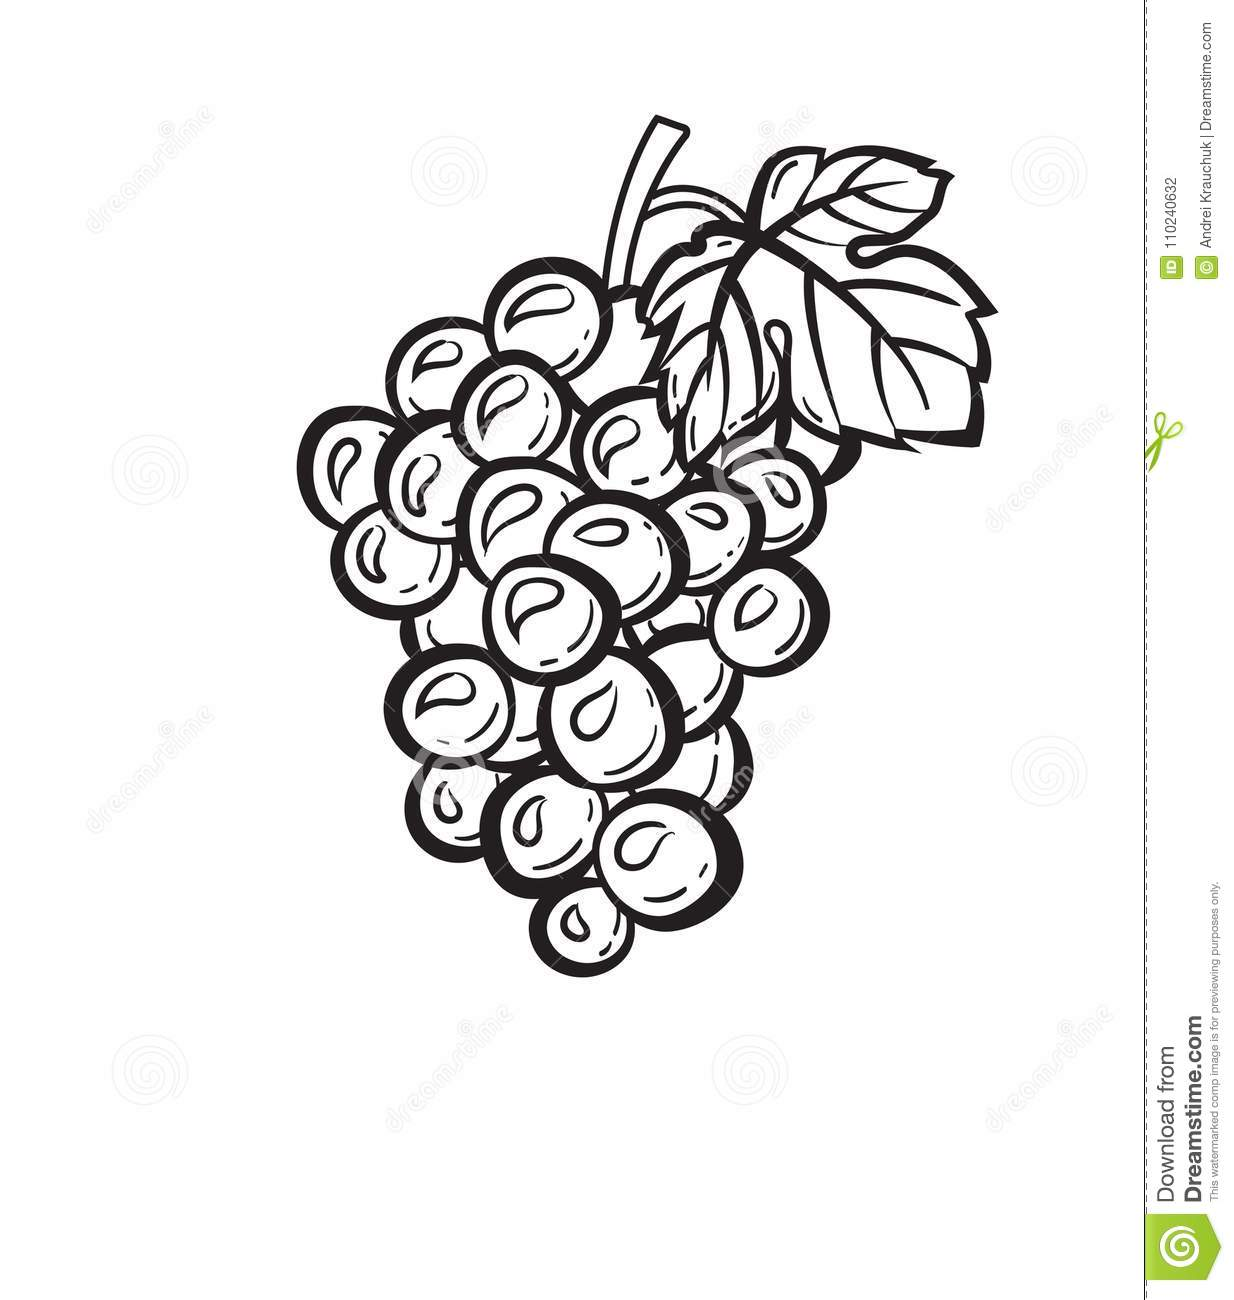 Cluster Of Grapes Hand Drawn Sketch Icon. Stock Vector ...